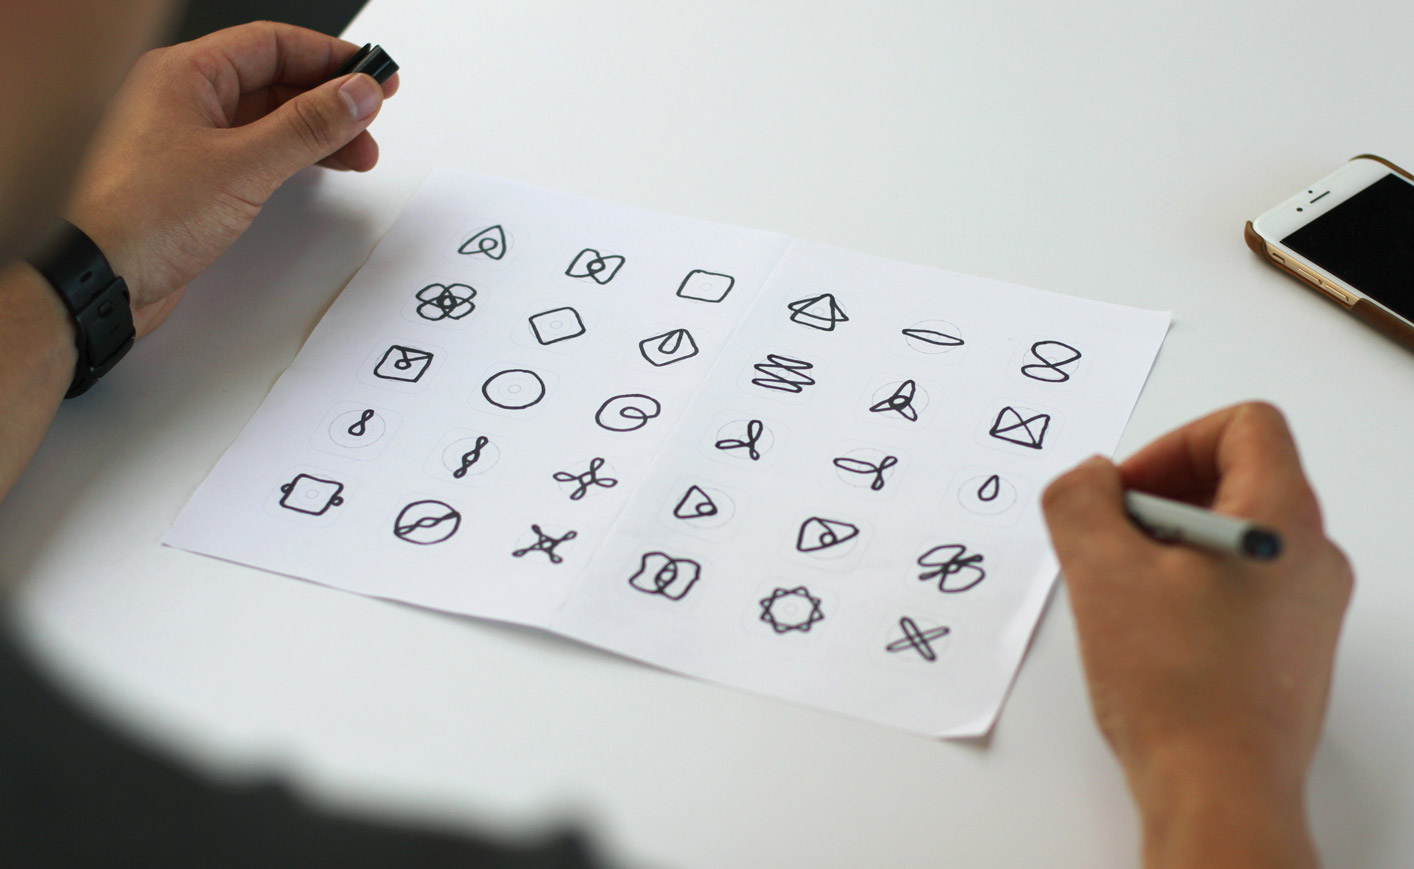 A piece of paper on a table showing doodles of various icons